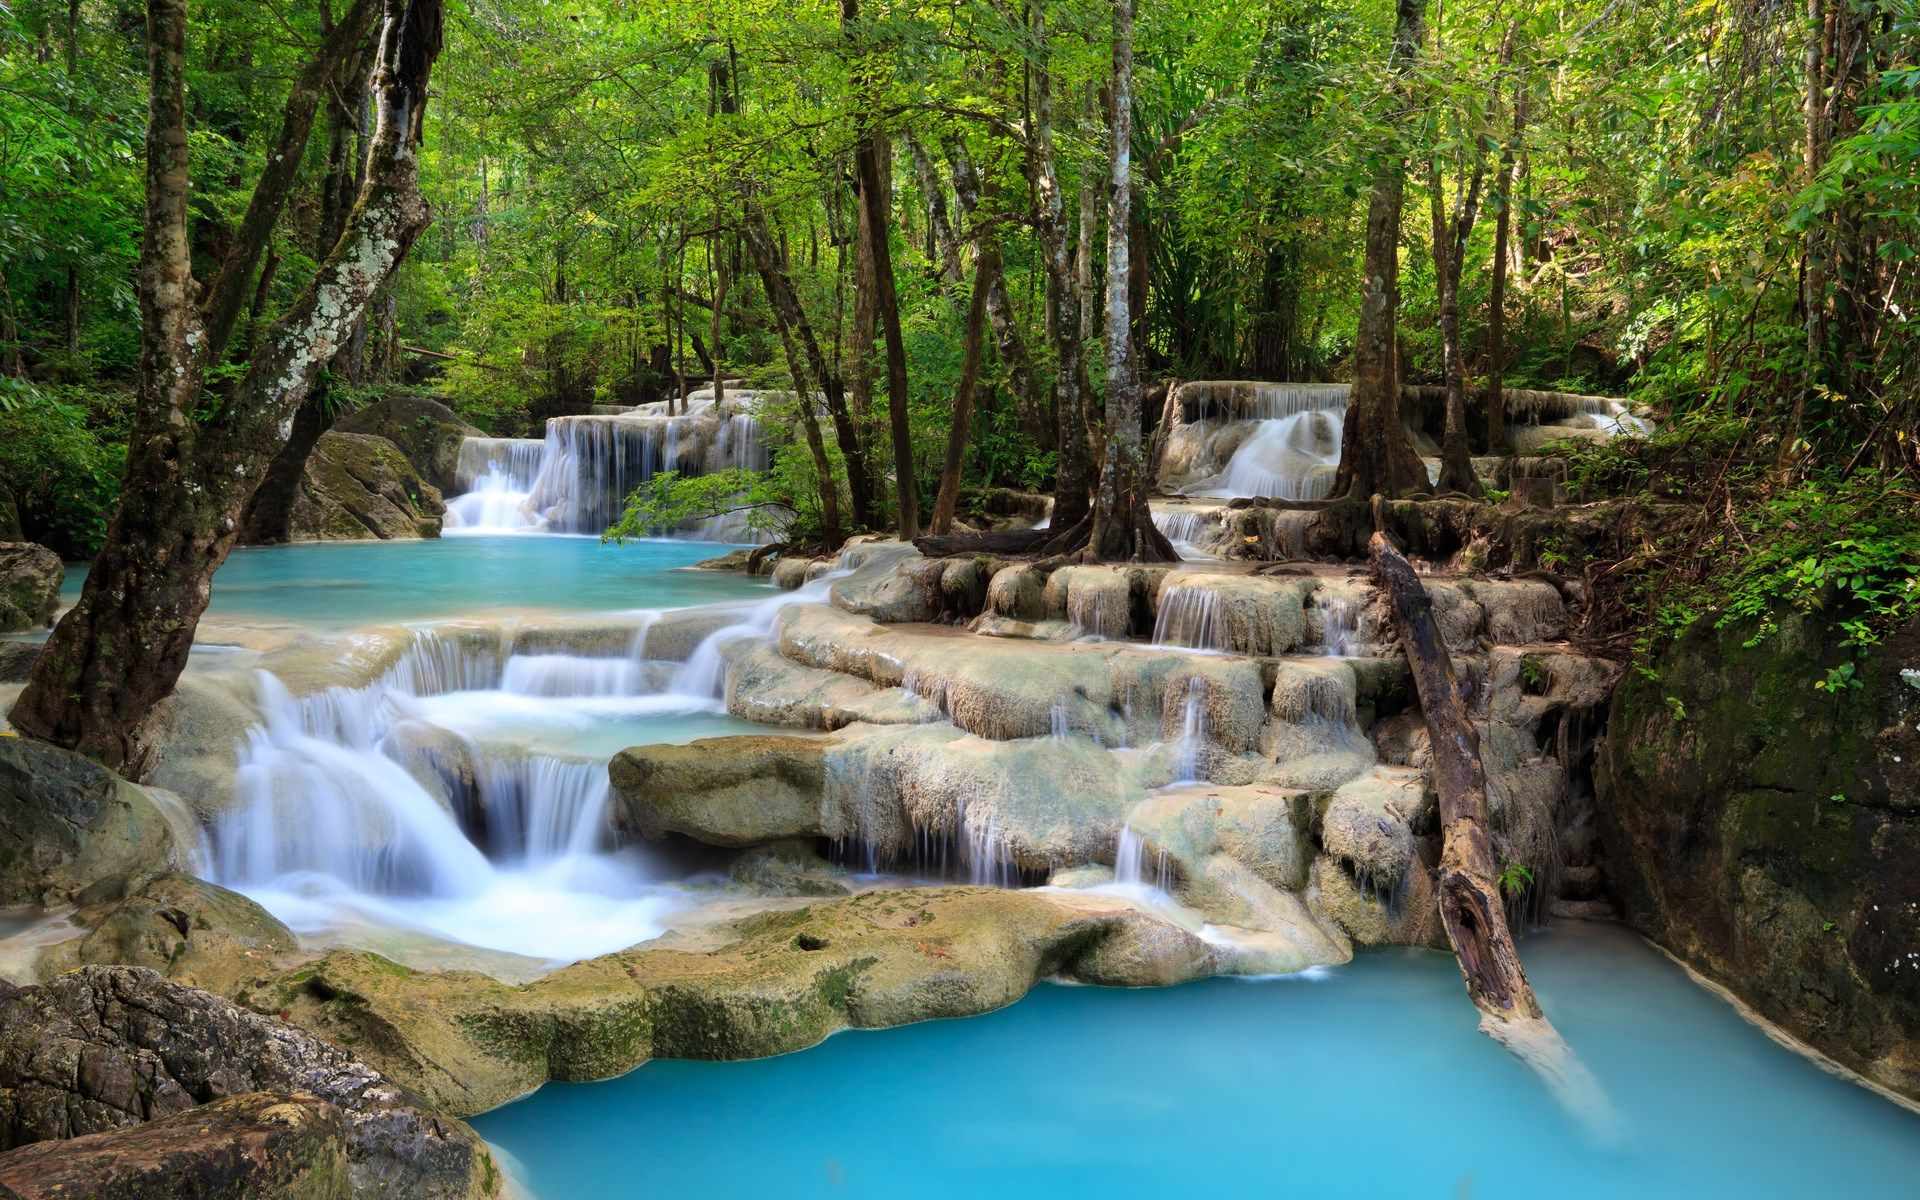 Full Hd Nature Wallpaper For Pc 1920x1200 Waterfall Scenery Waterfall Wallpaper Waterfall